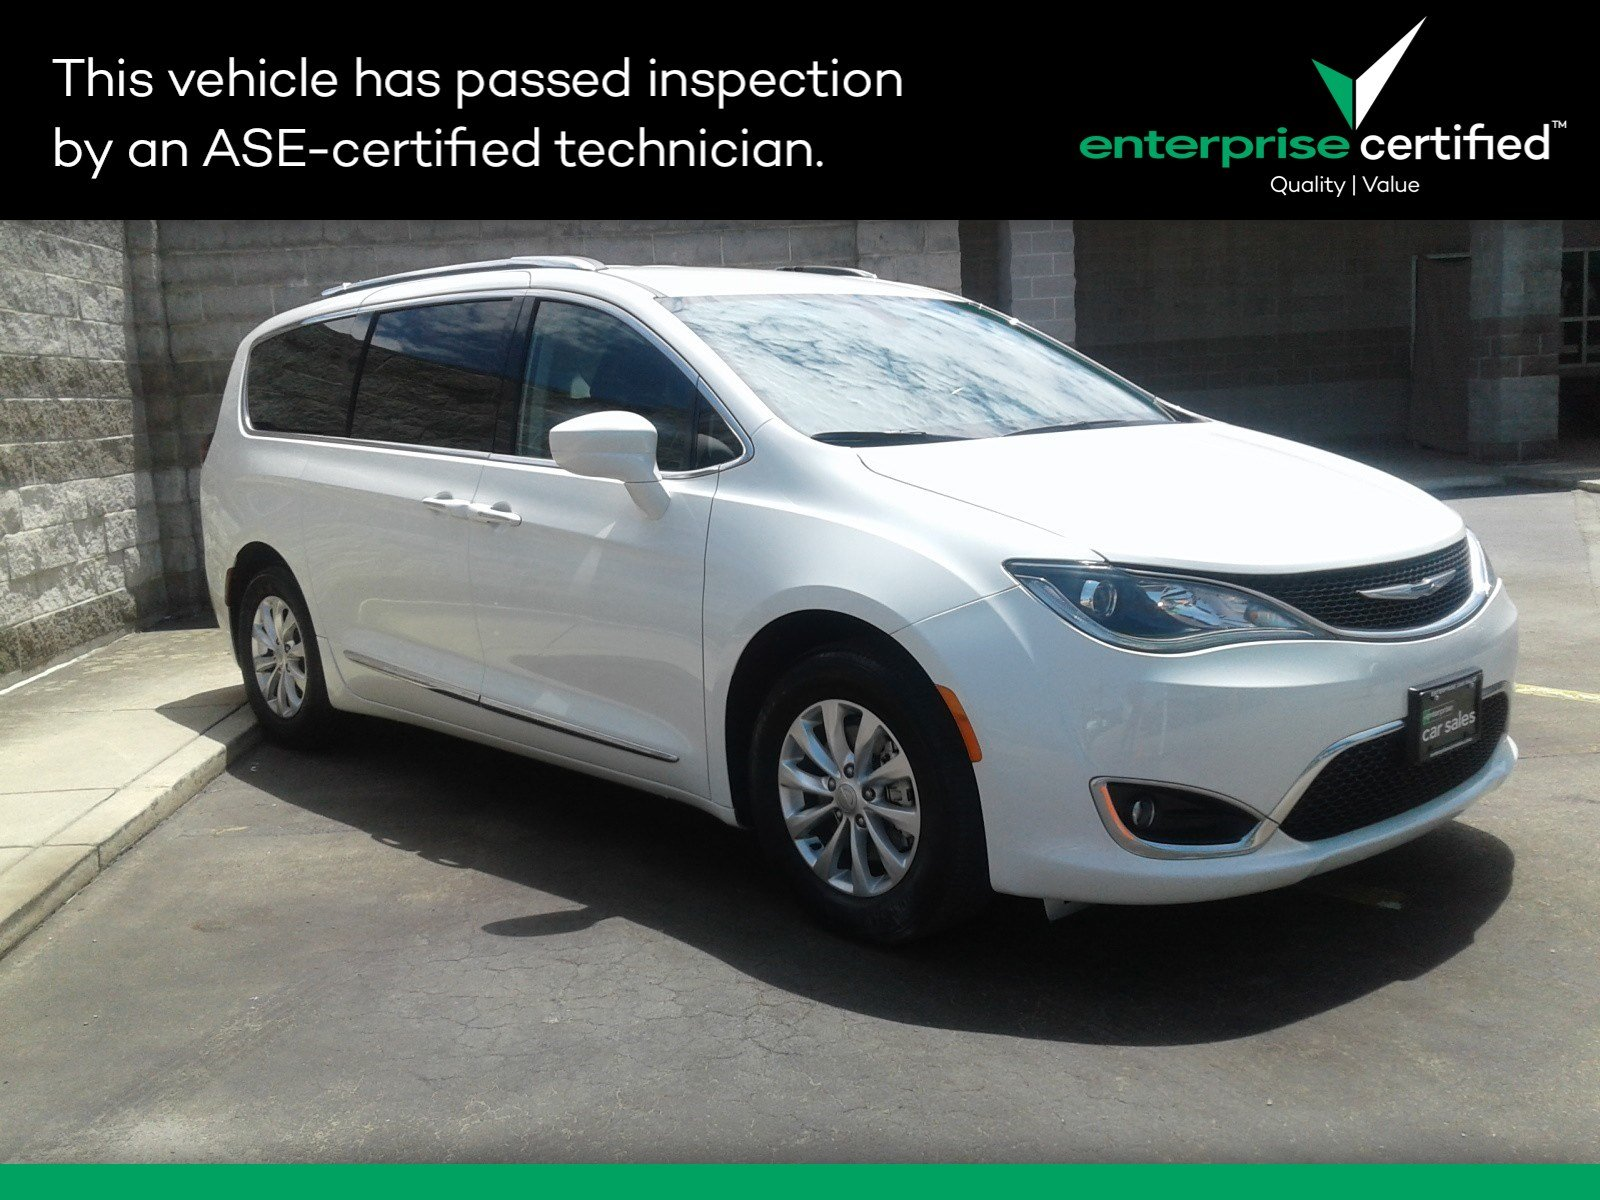 Used Mpv Cars for Sale Near Me Best Of Enterprise Car Sales Certified Used Cars for Sale Car Dealership